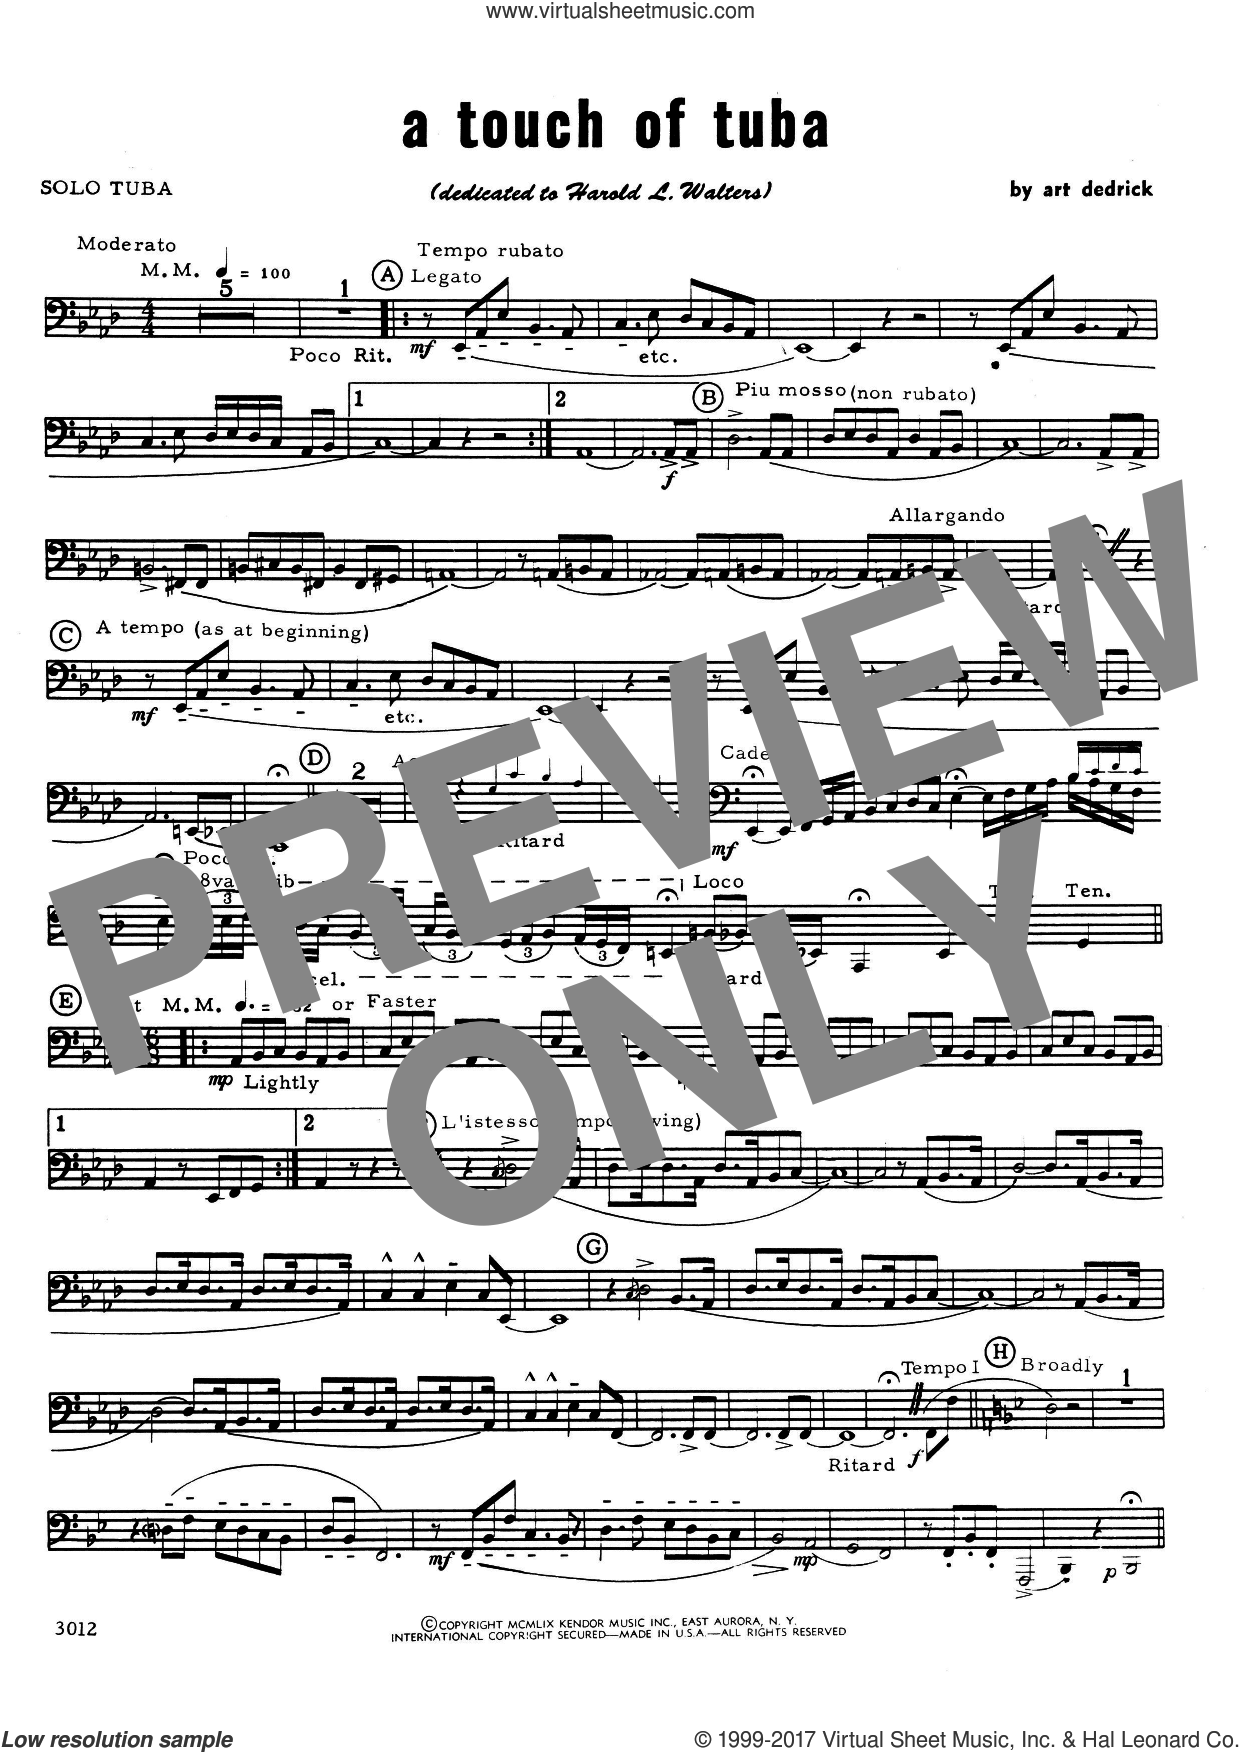 A Touch Of Tuba (complete set of parts) sheet music for tuba and piano by Art Dedrick, intermediate skill level